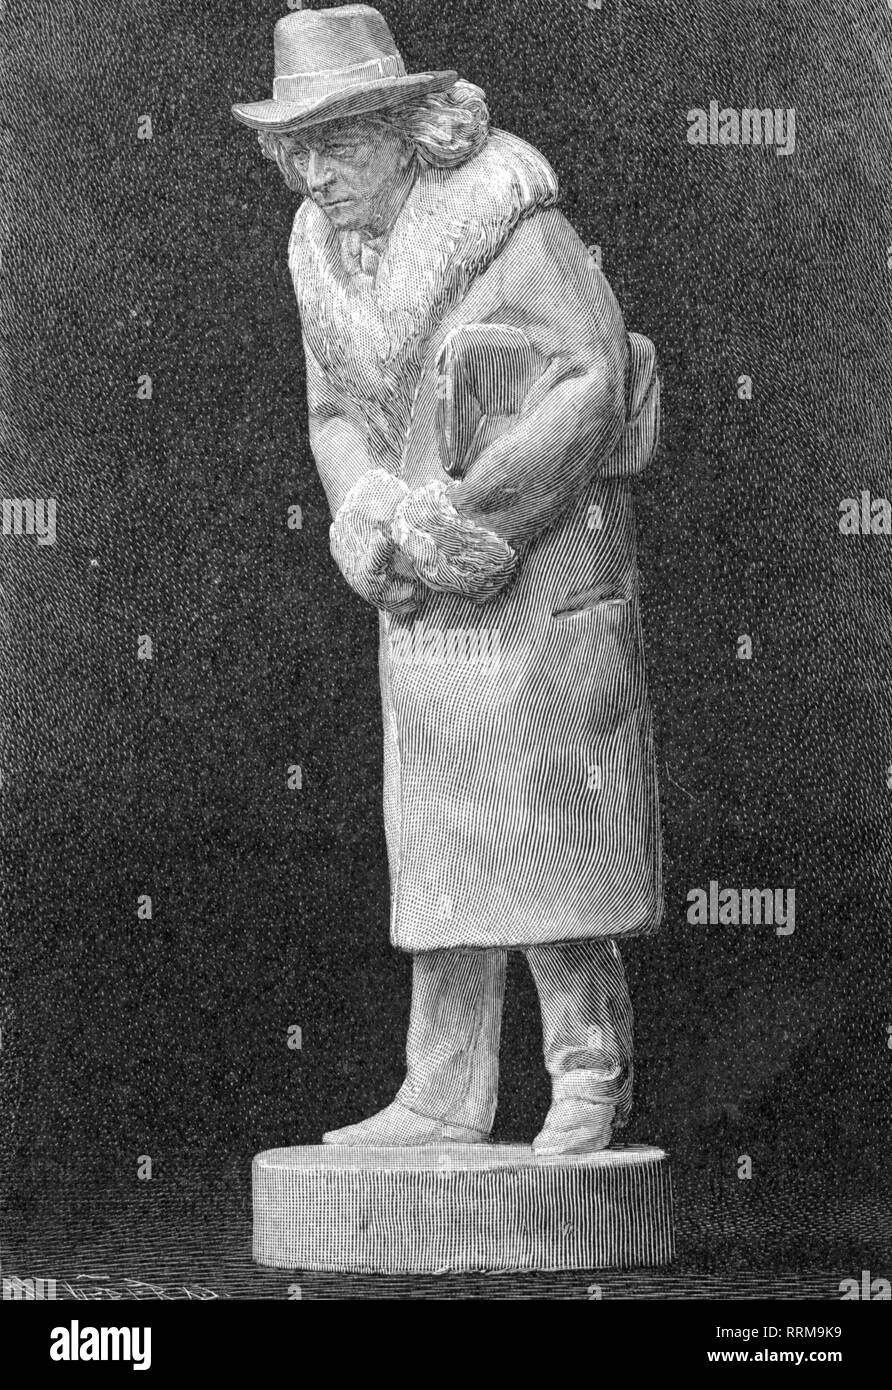 Mommsen, Theodor, 30.11.1817 - 1.11.1903, German historian, full length, statuette by Karl Pracht, wood engraving, circa 1900, Additional-Rights-Clearance-Info-Not-Available - Stock Image